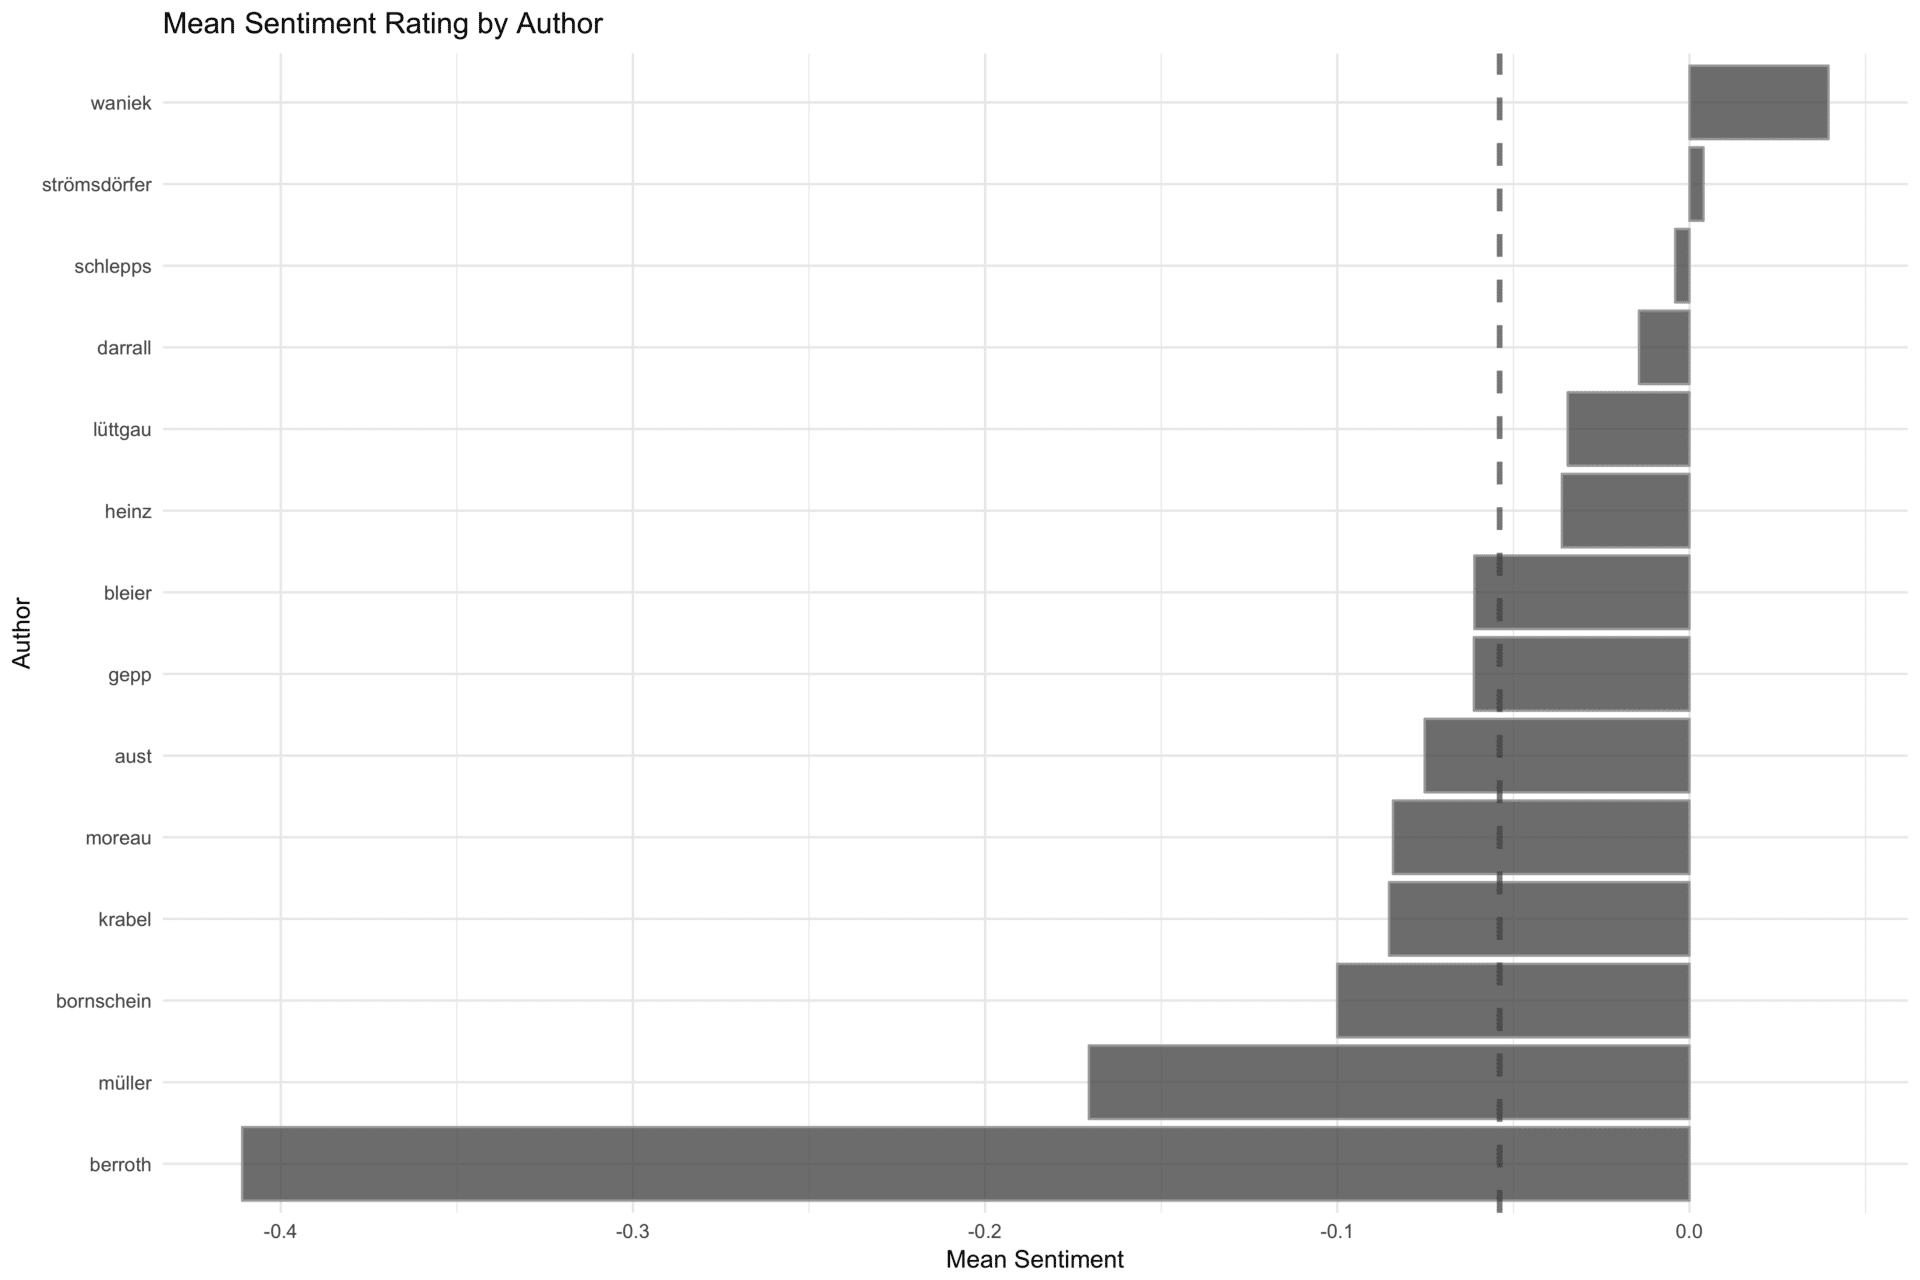 Mean Sentiment Rating by Author